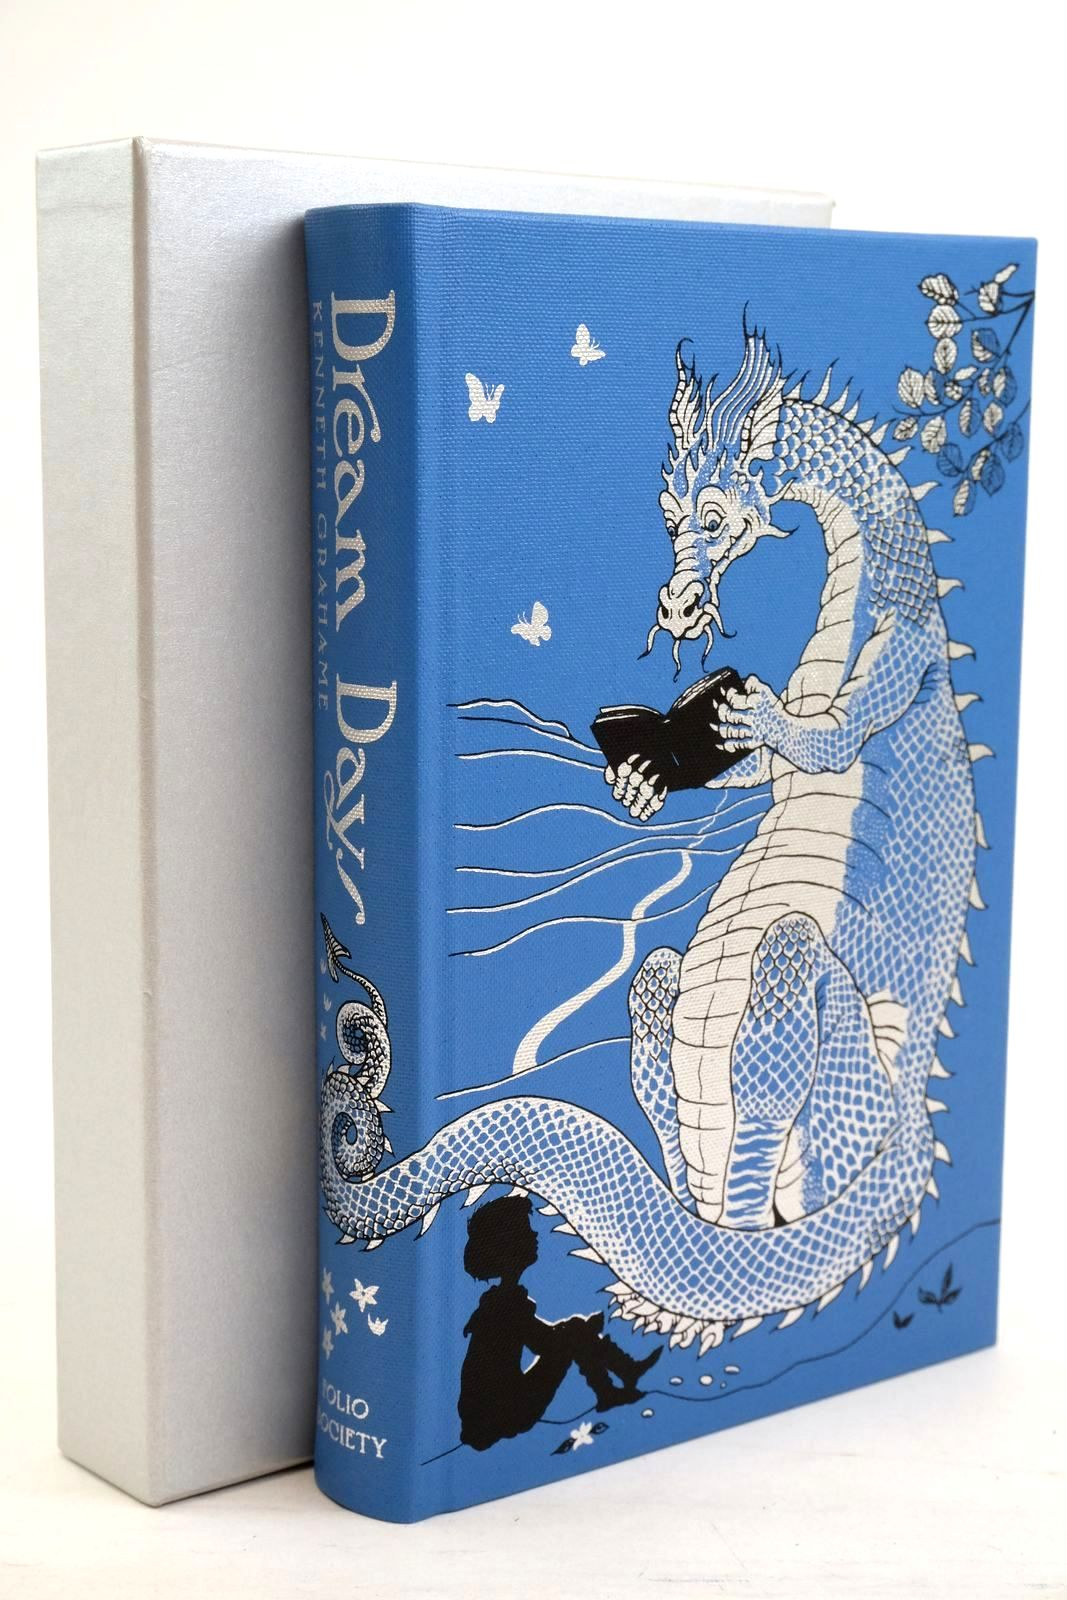 Photo of DREAM DAYS written by Grahame, Kenneth illustrated by McFarlane, Debra published by Folio Society (STOCK CODE: 1320727)  for sale by Stella & Rose's Books